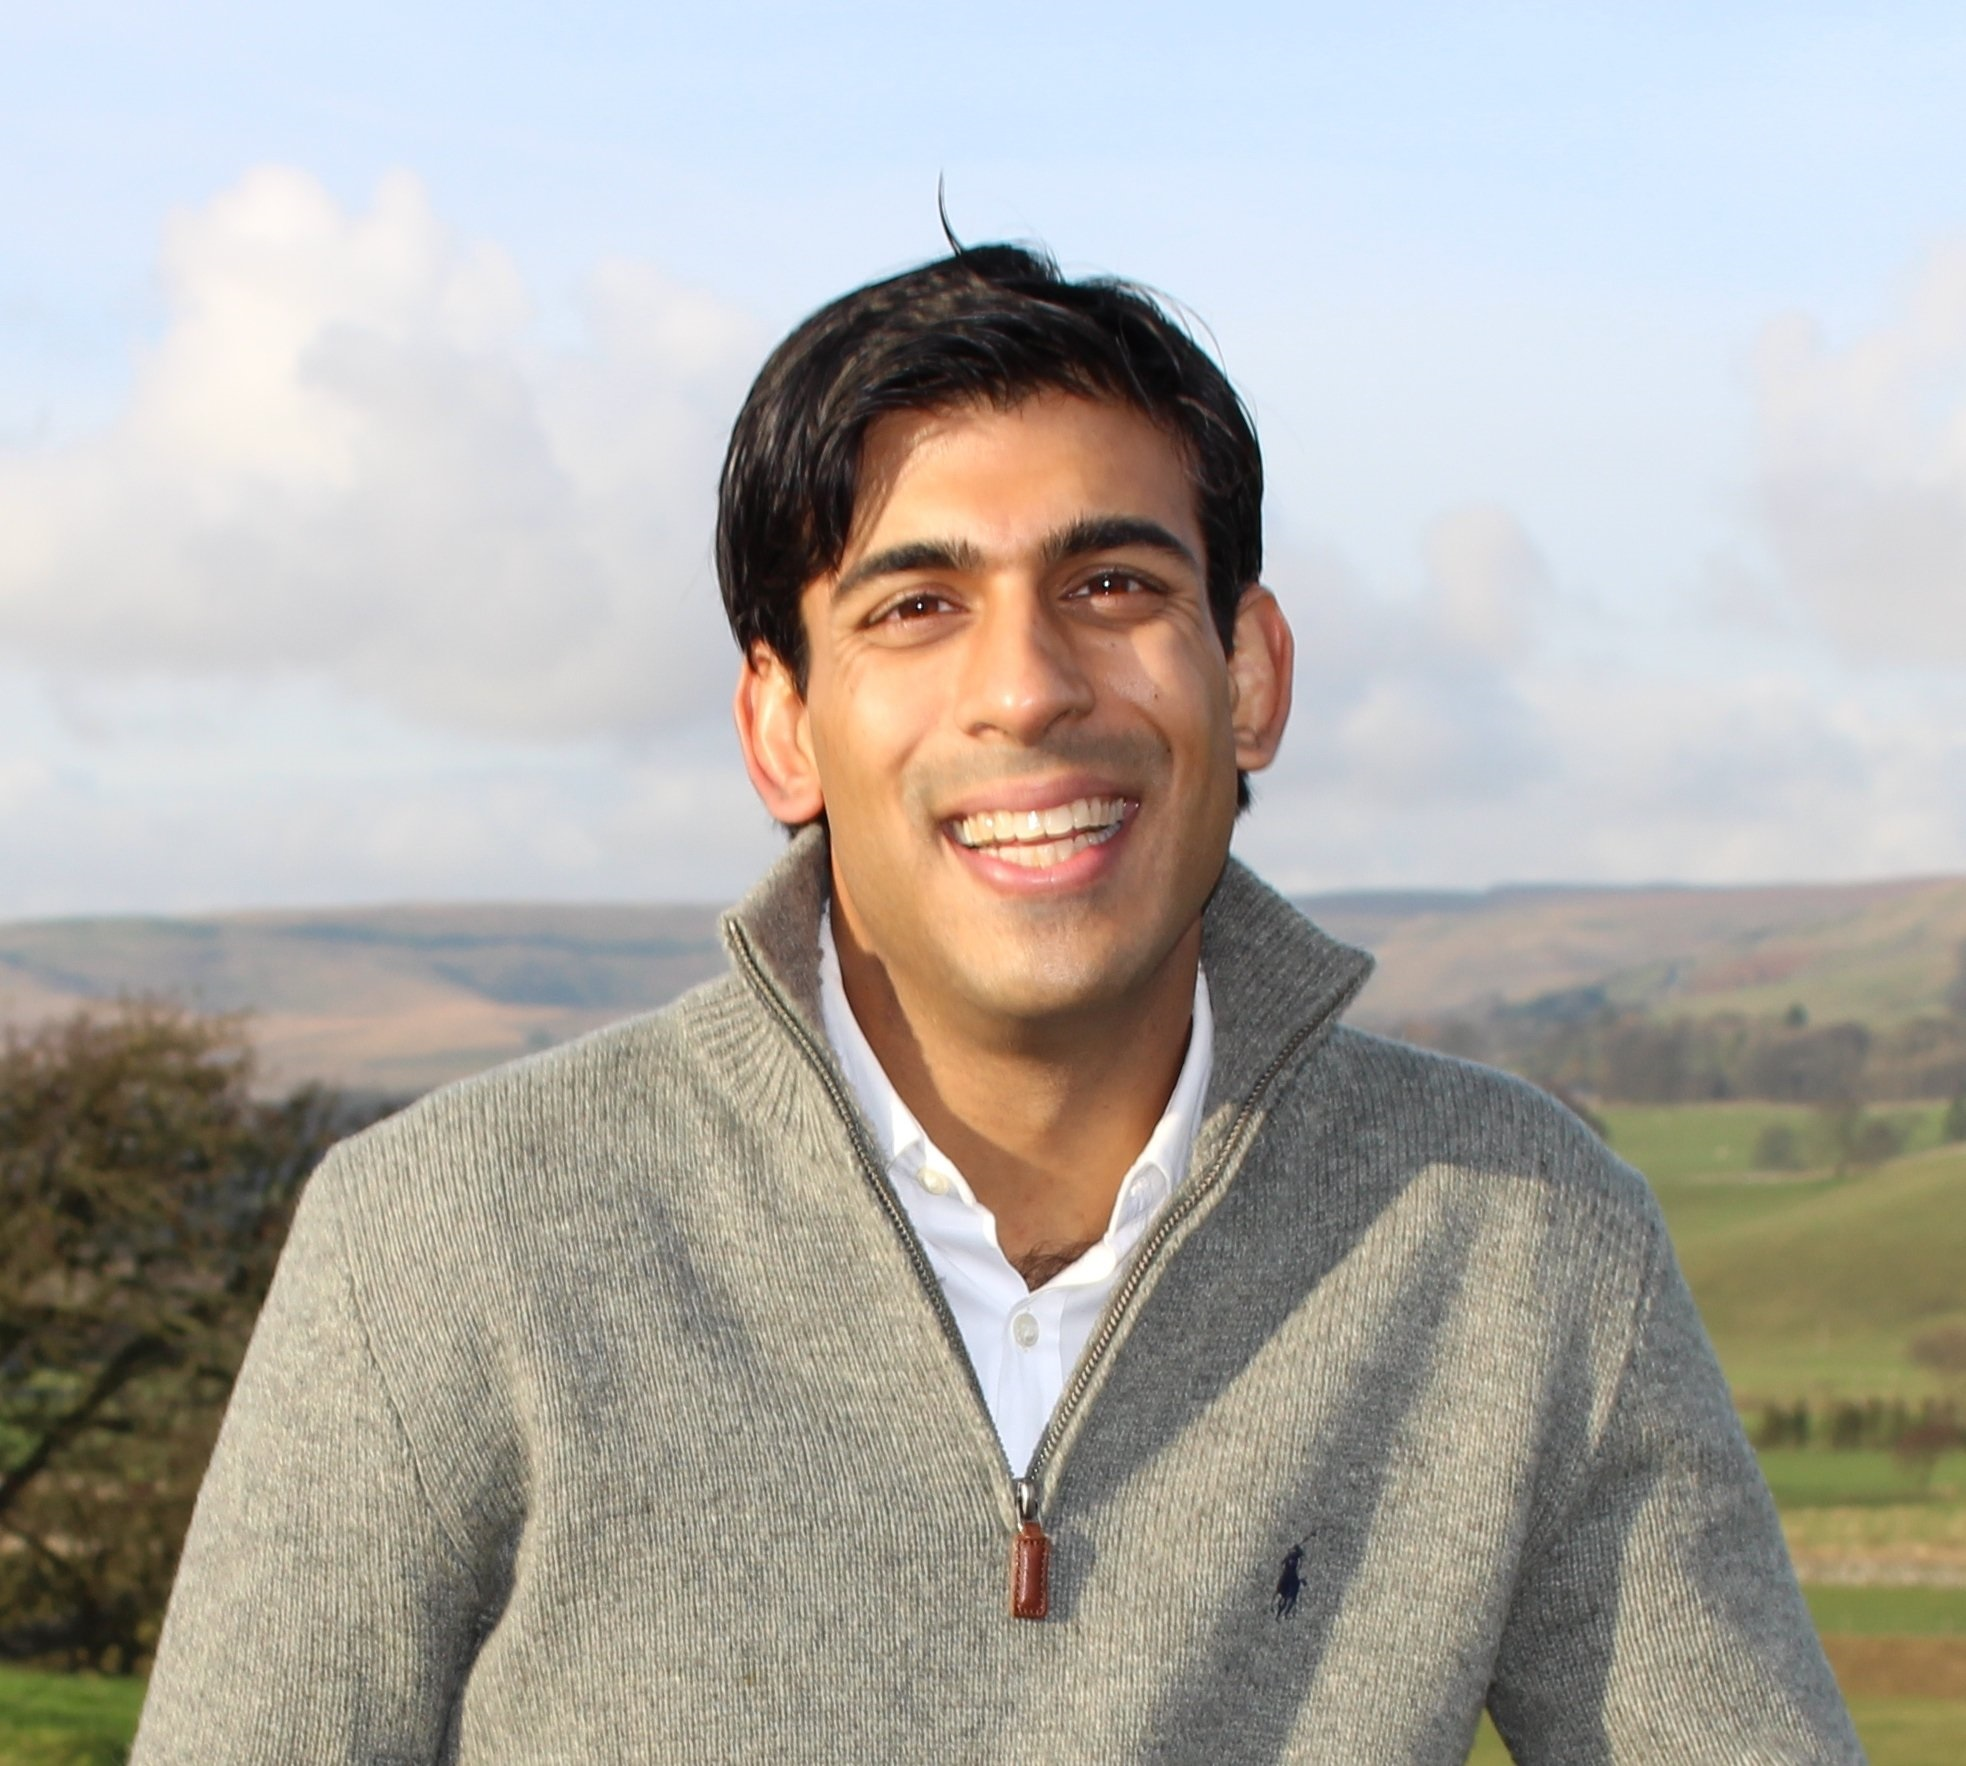 Sunak first won an election from Richmond (Yorkshire) in 2015.